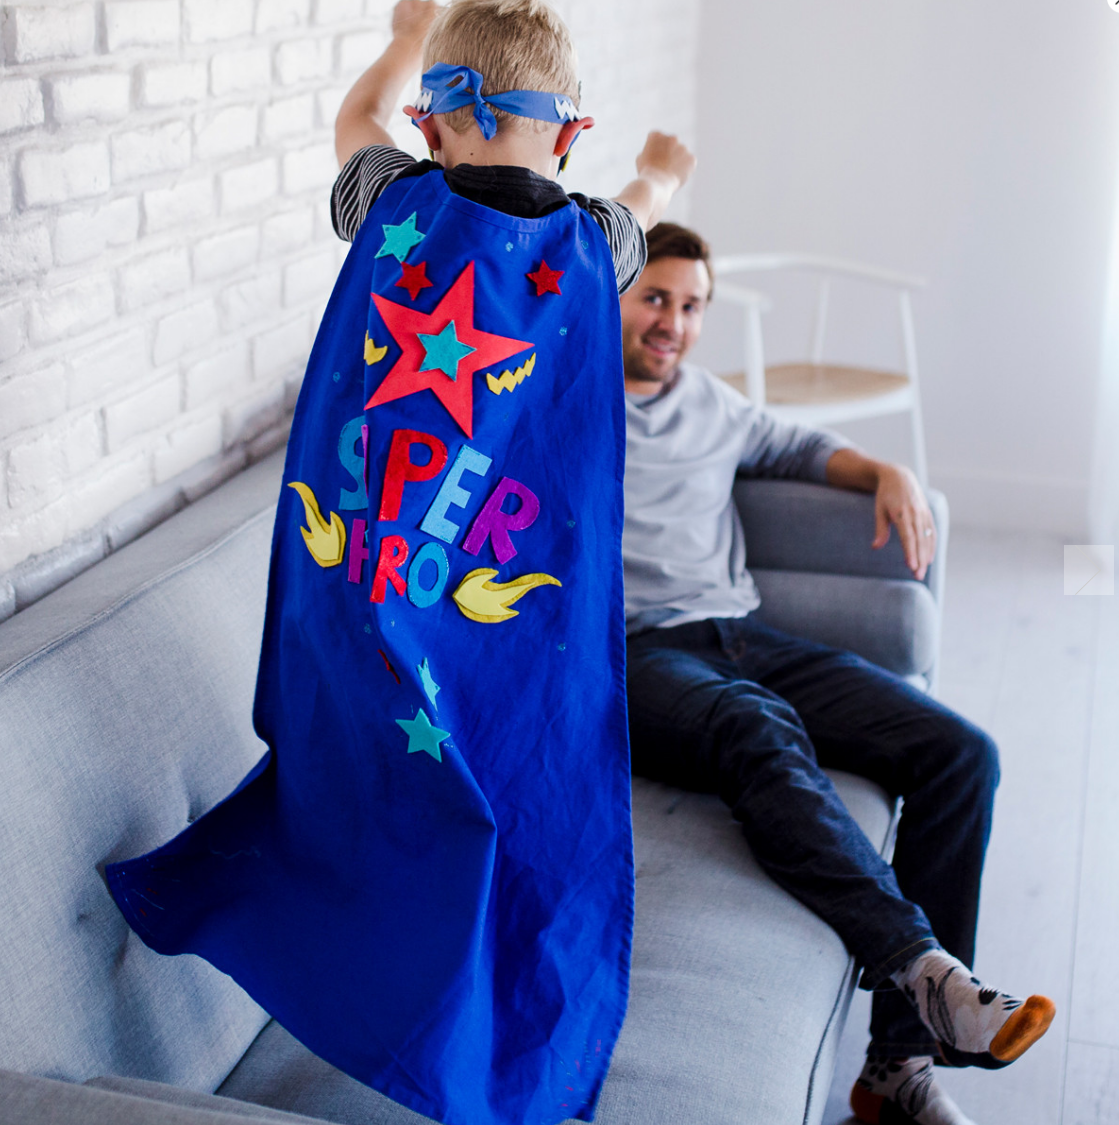 This super fun kit from Seedling.com lets your child create his own cape to be a superhero! Pretend play at its best!